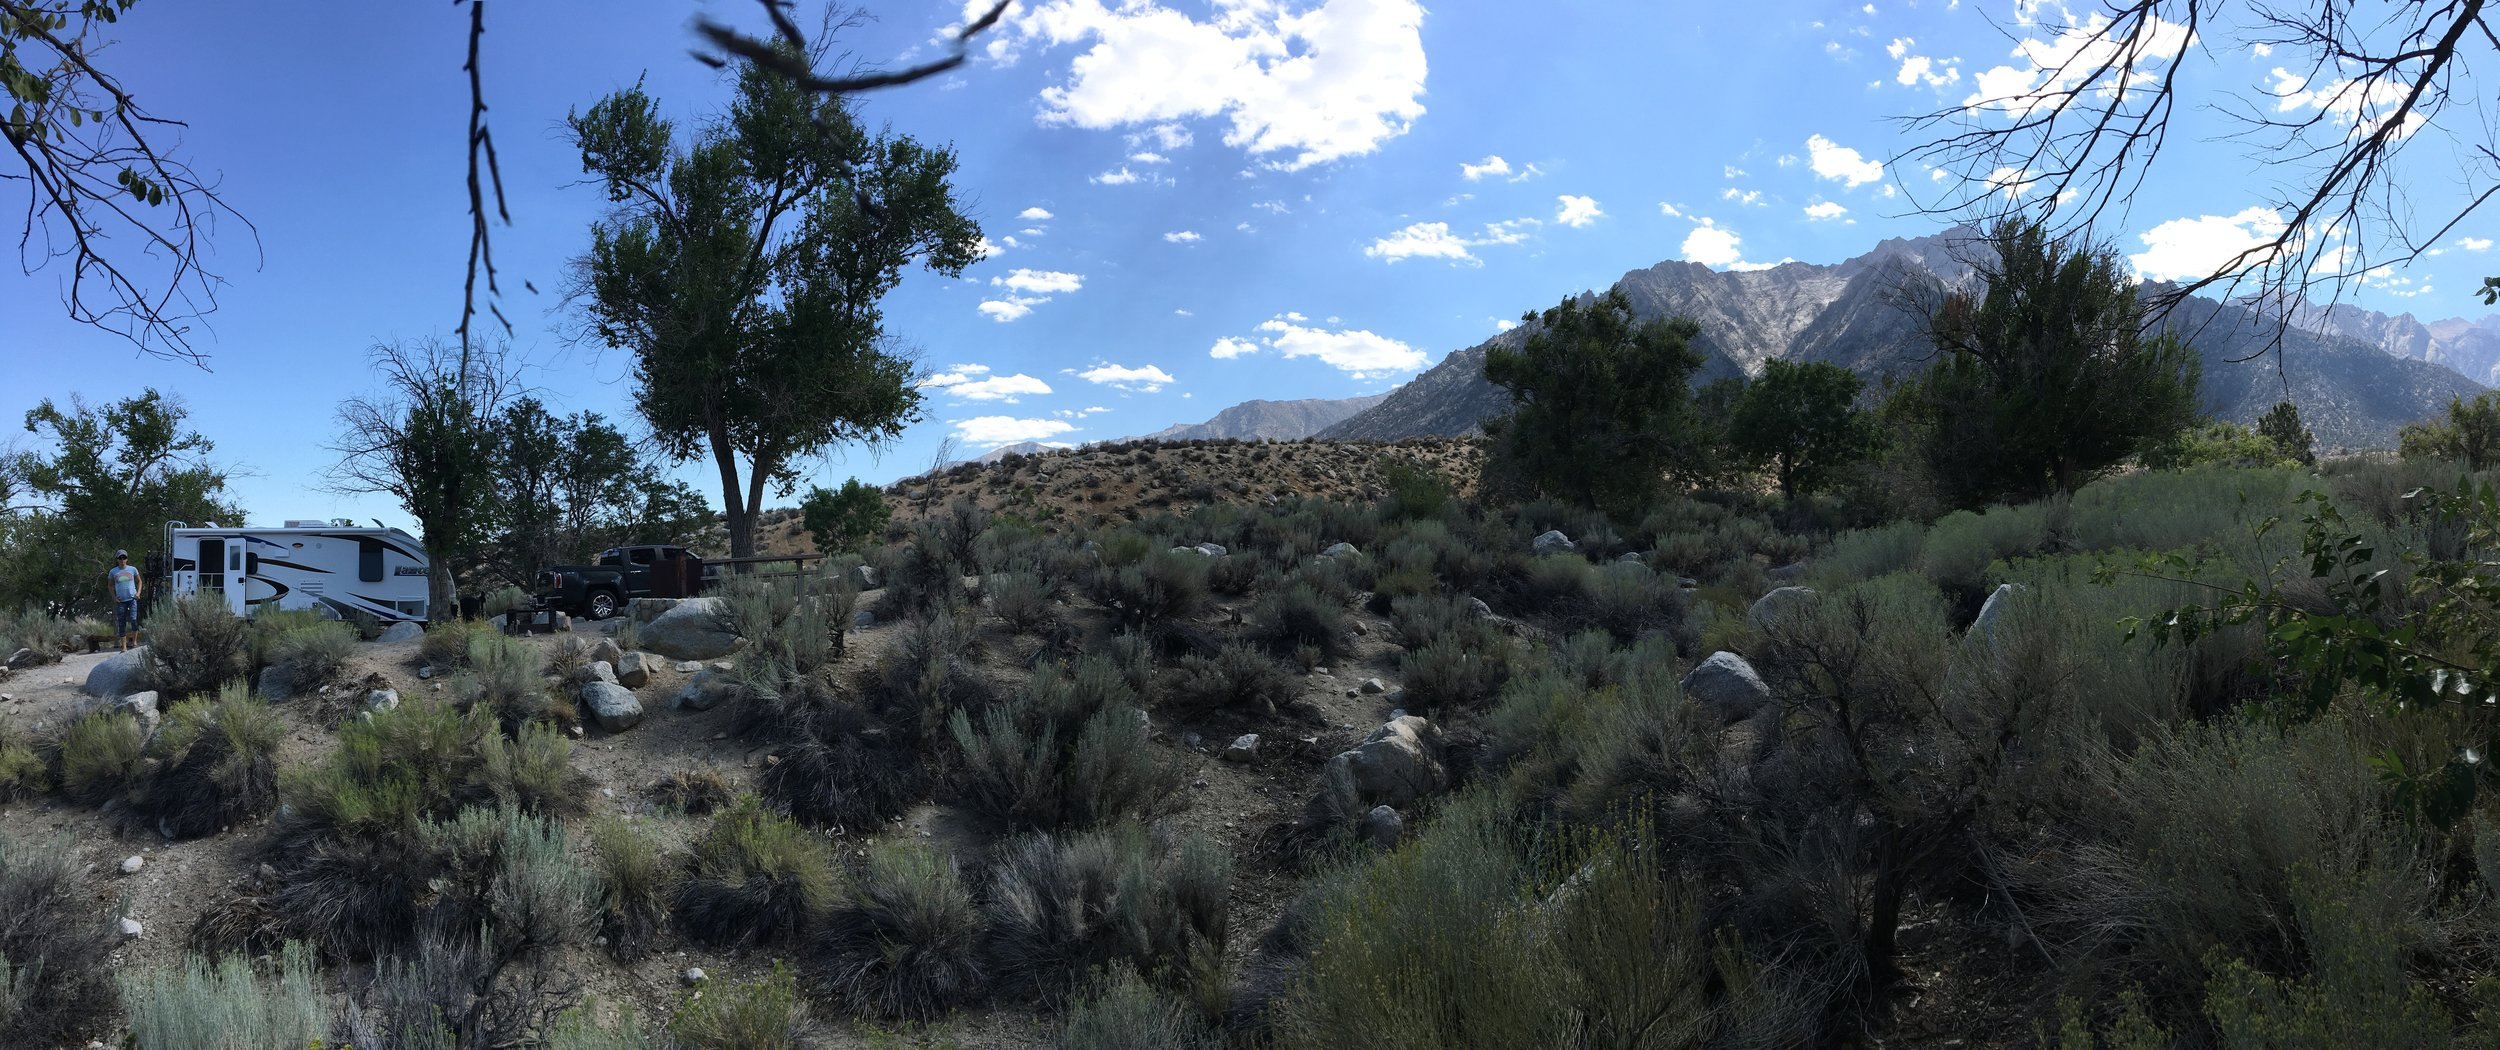 Camping at  Lone Pine Campground